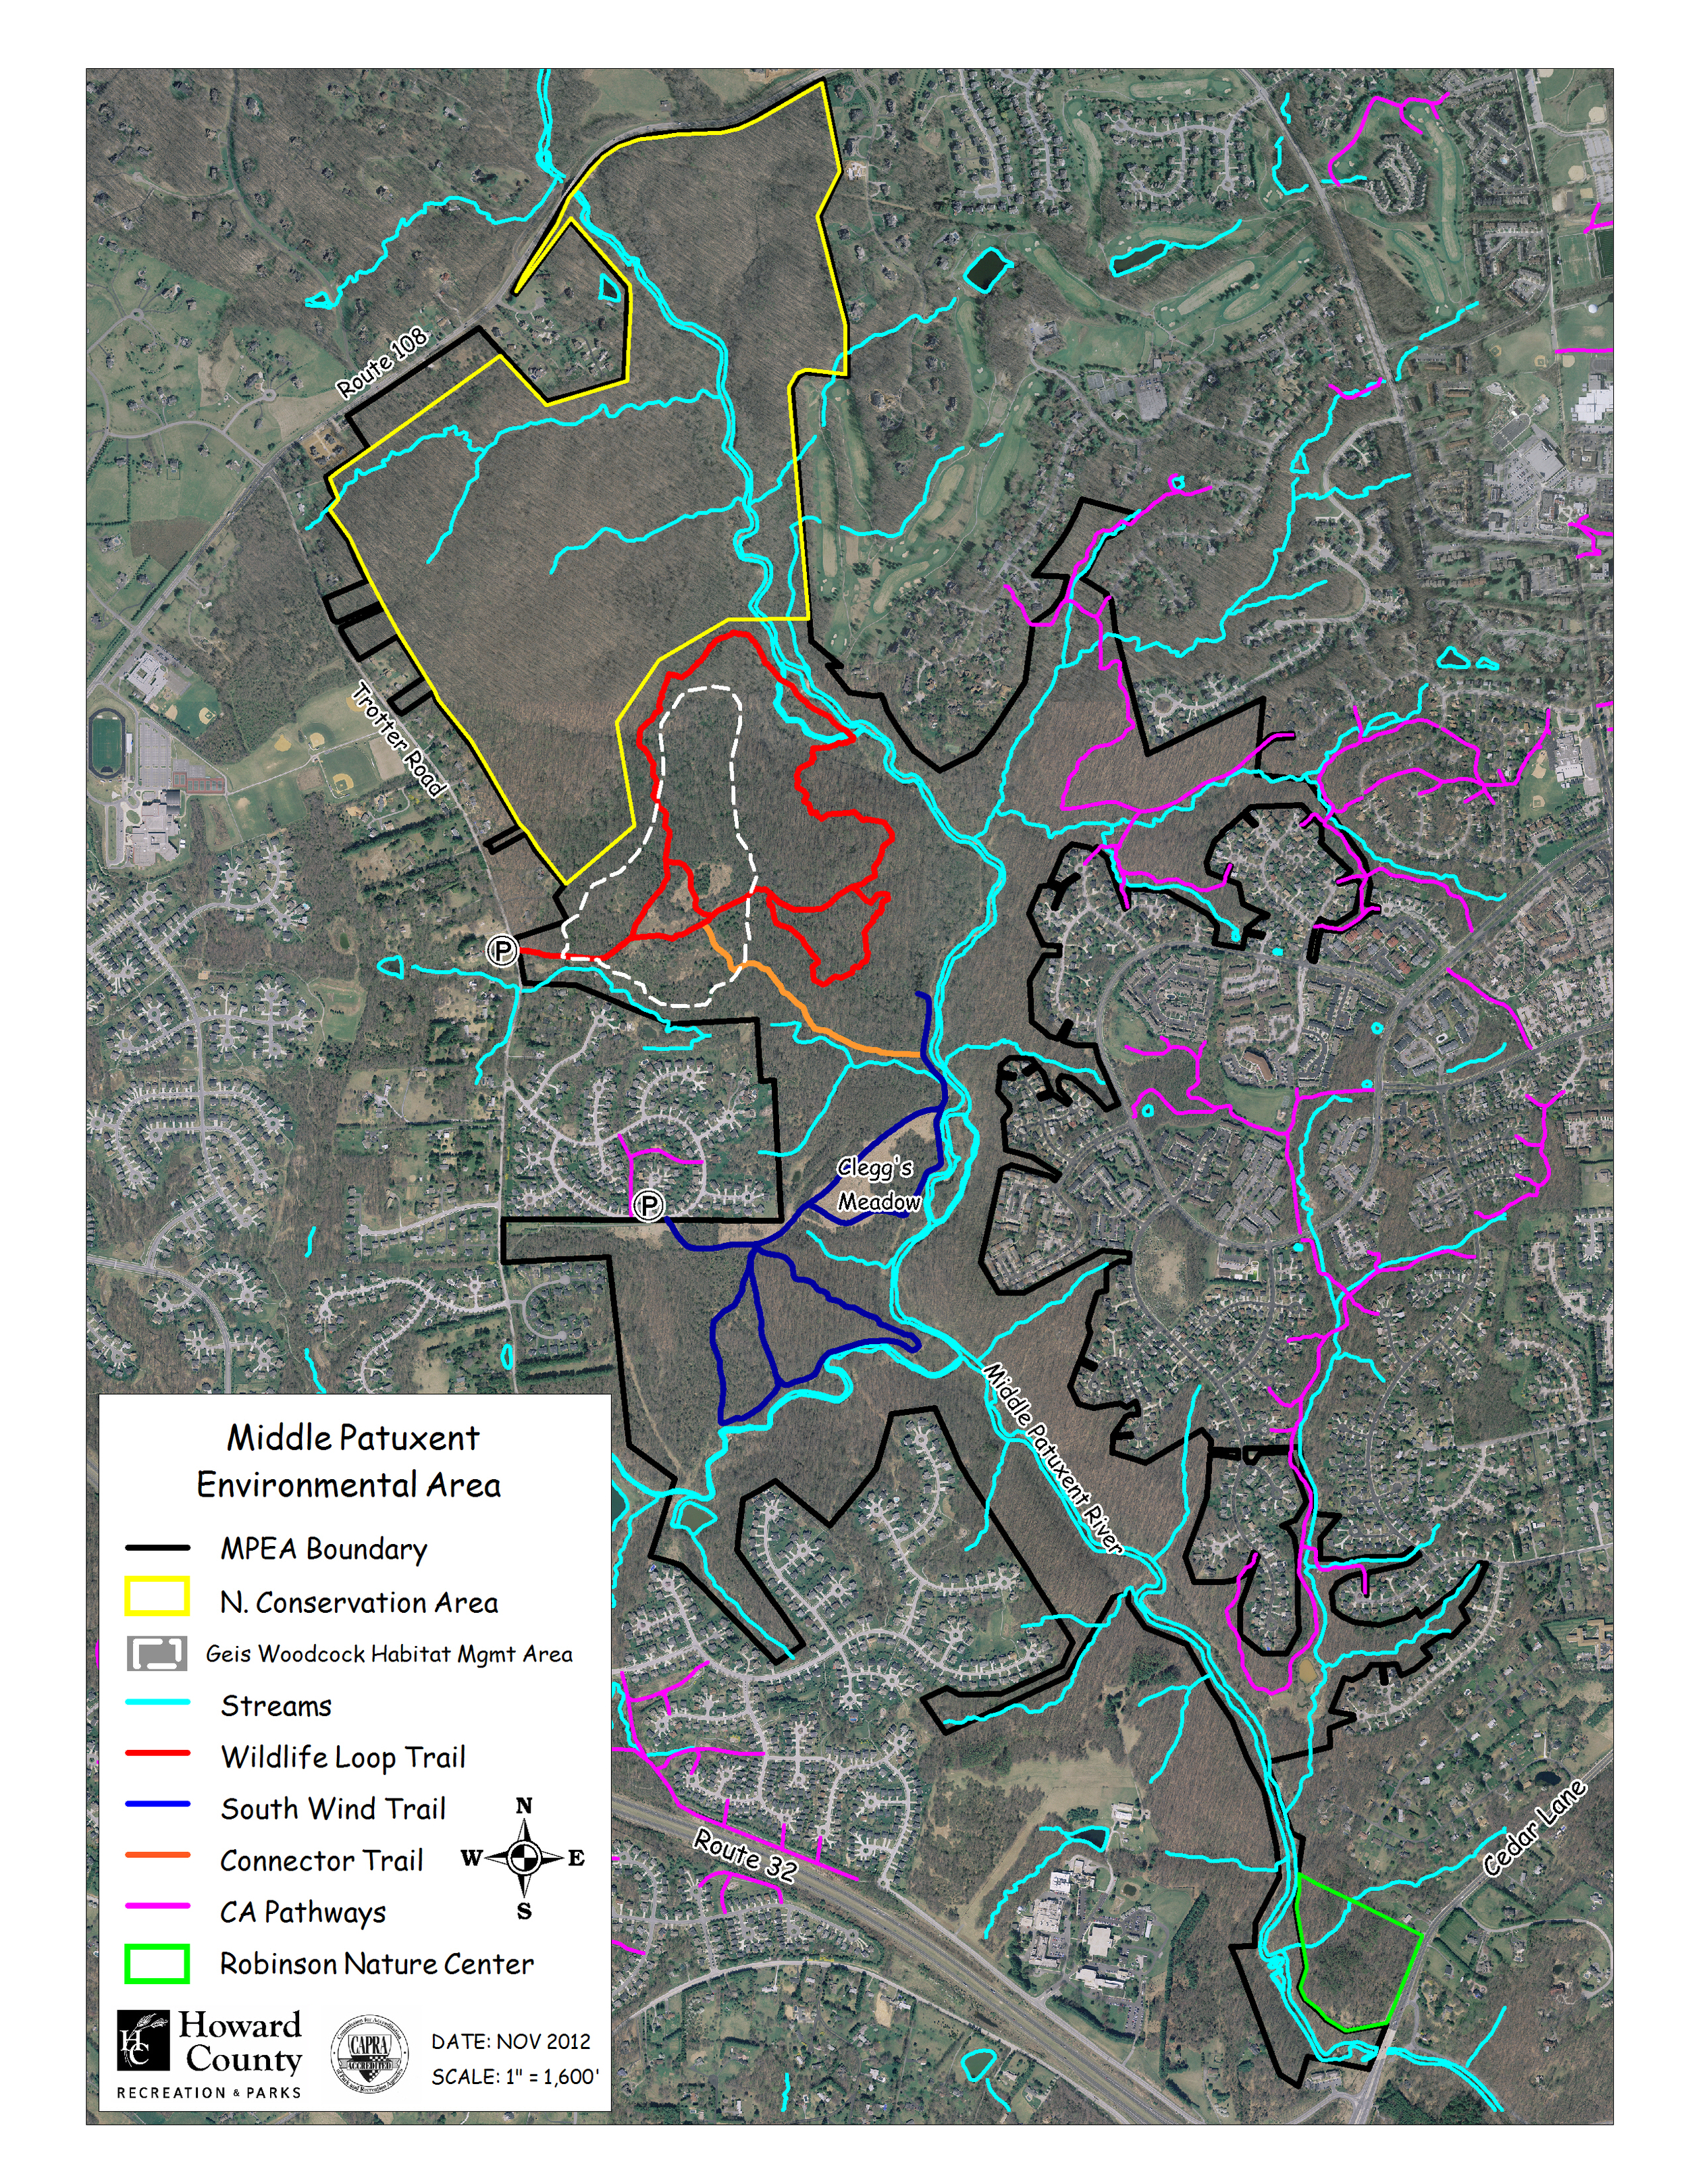 A Map of the MPEA with available trails highlighted. Columbia is to the east and Clarksville to the north and west.